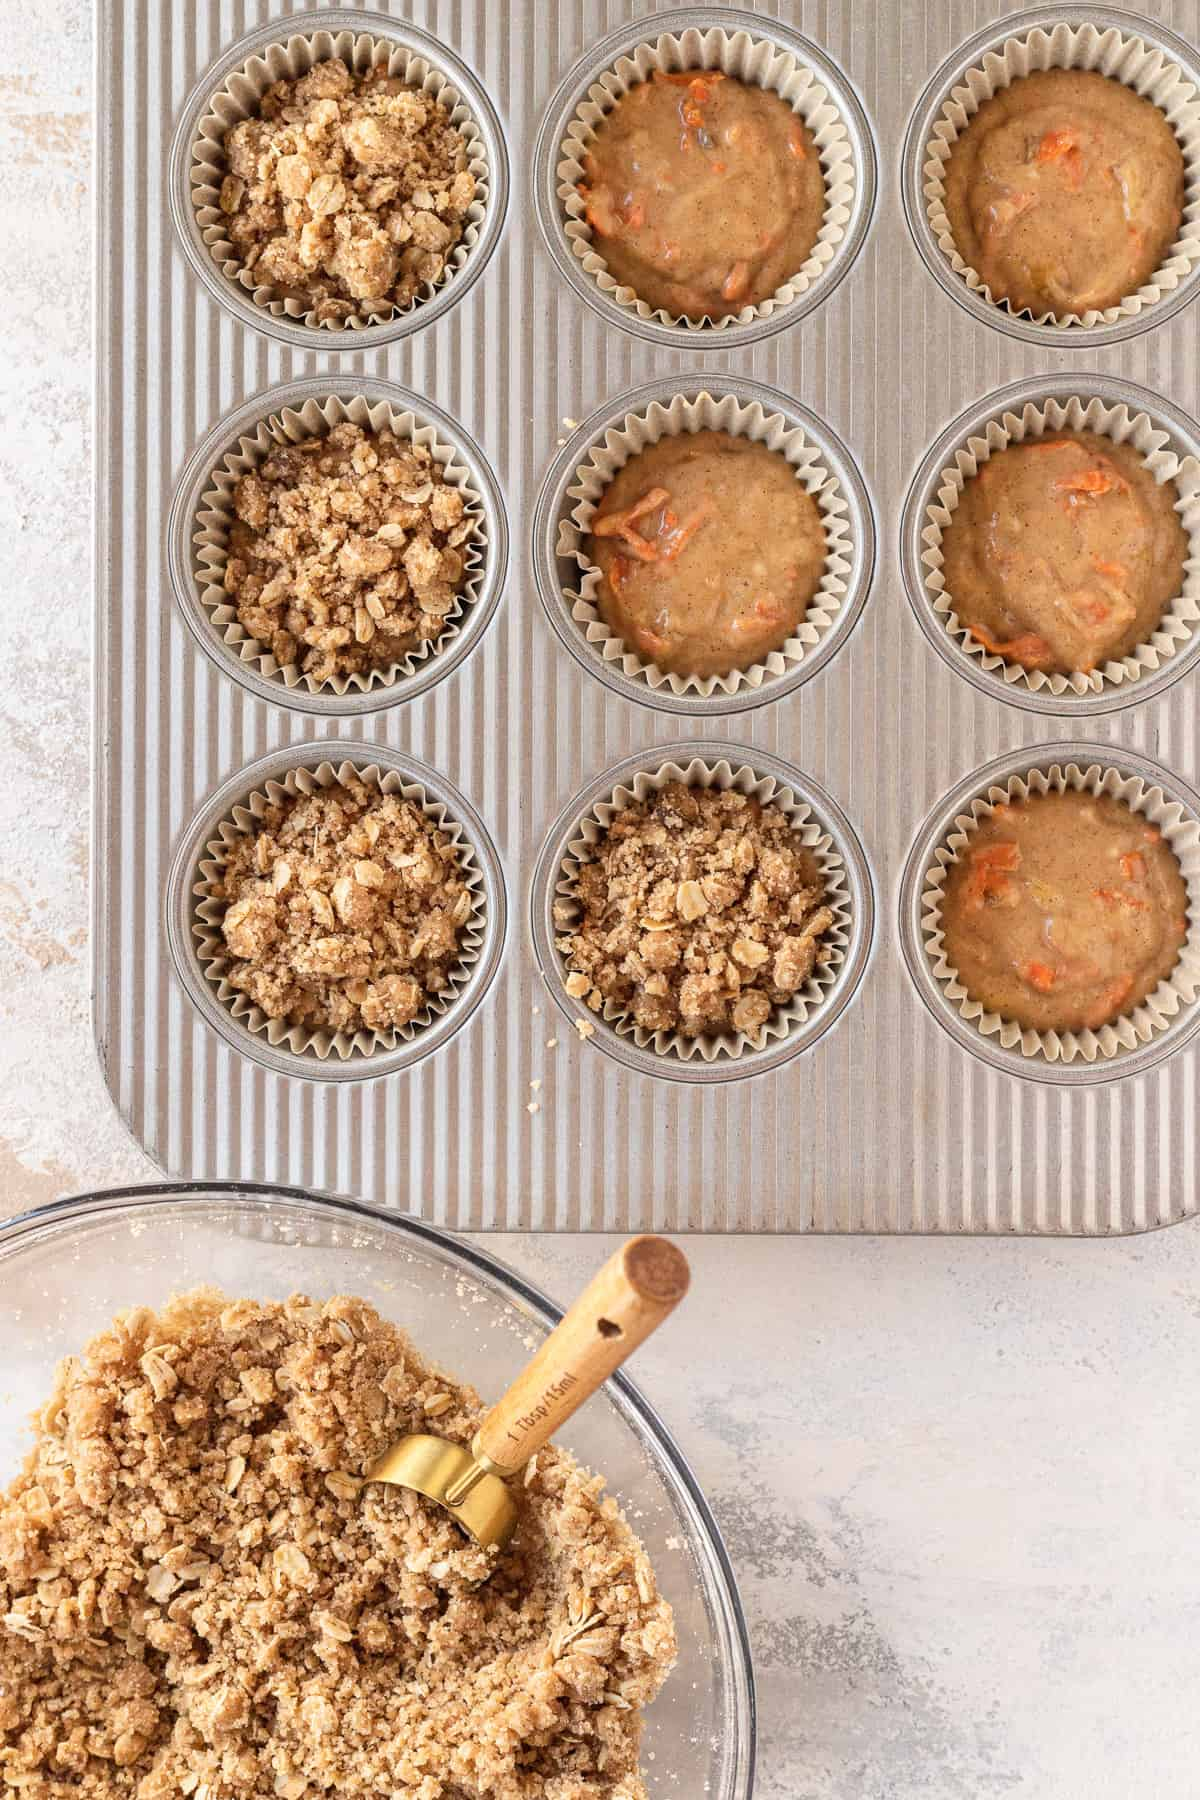 muffin batter in muffin pan with oat streusel being scooped on top